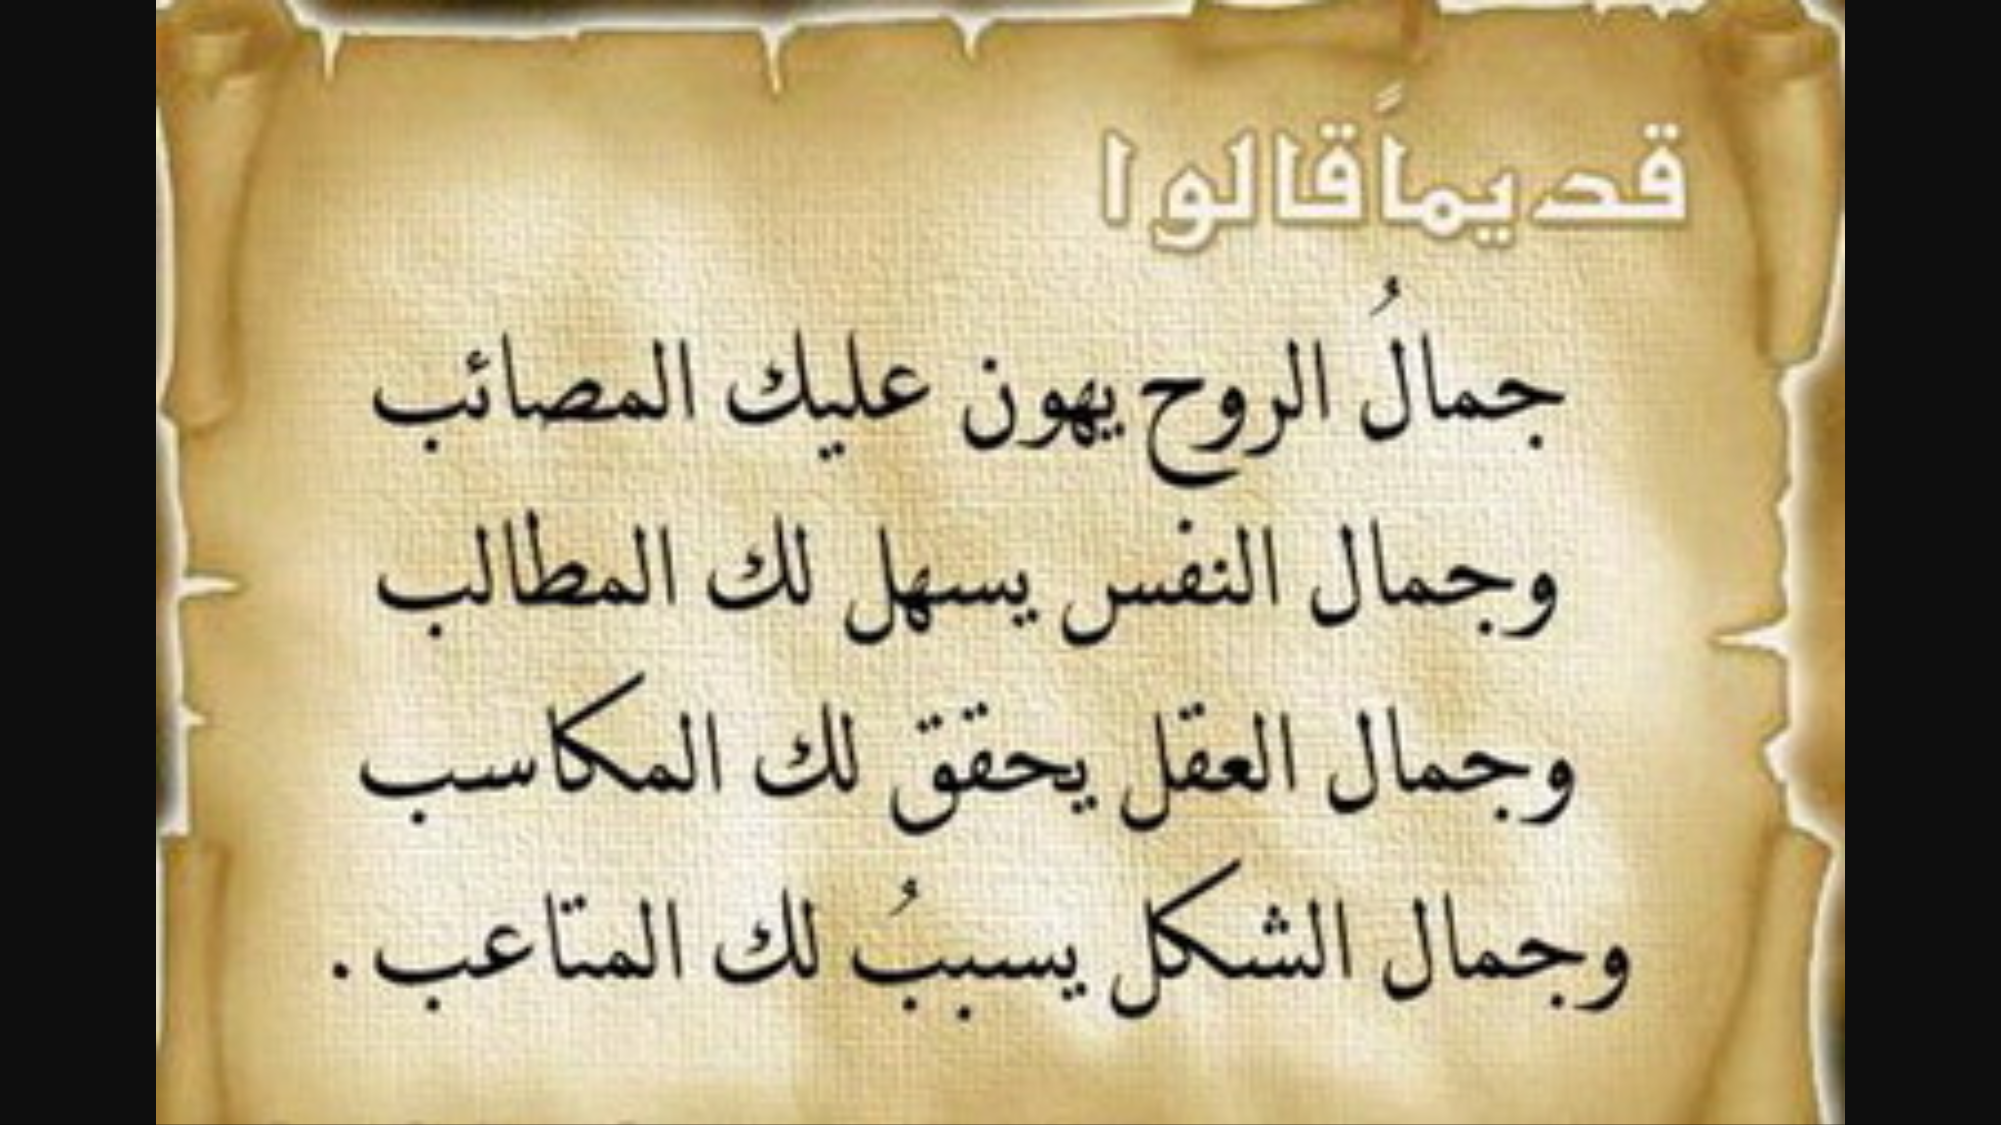 Pin By Danah On حكم و أقوال جميلة Words Quotes Arabic Quotes